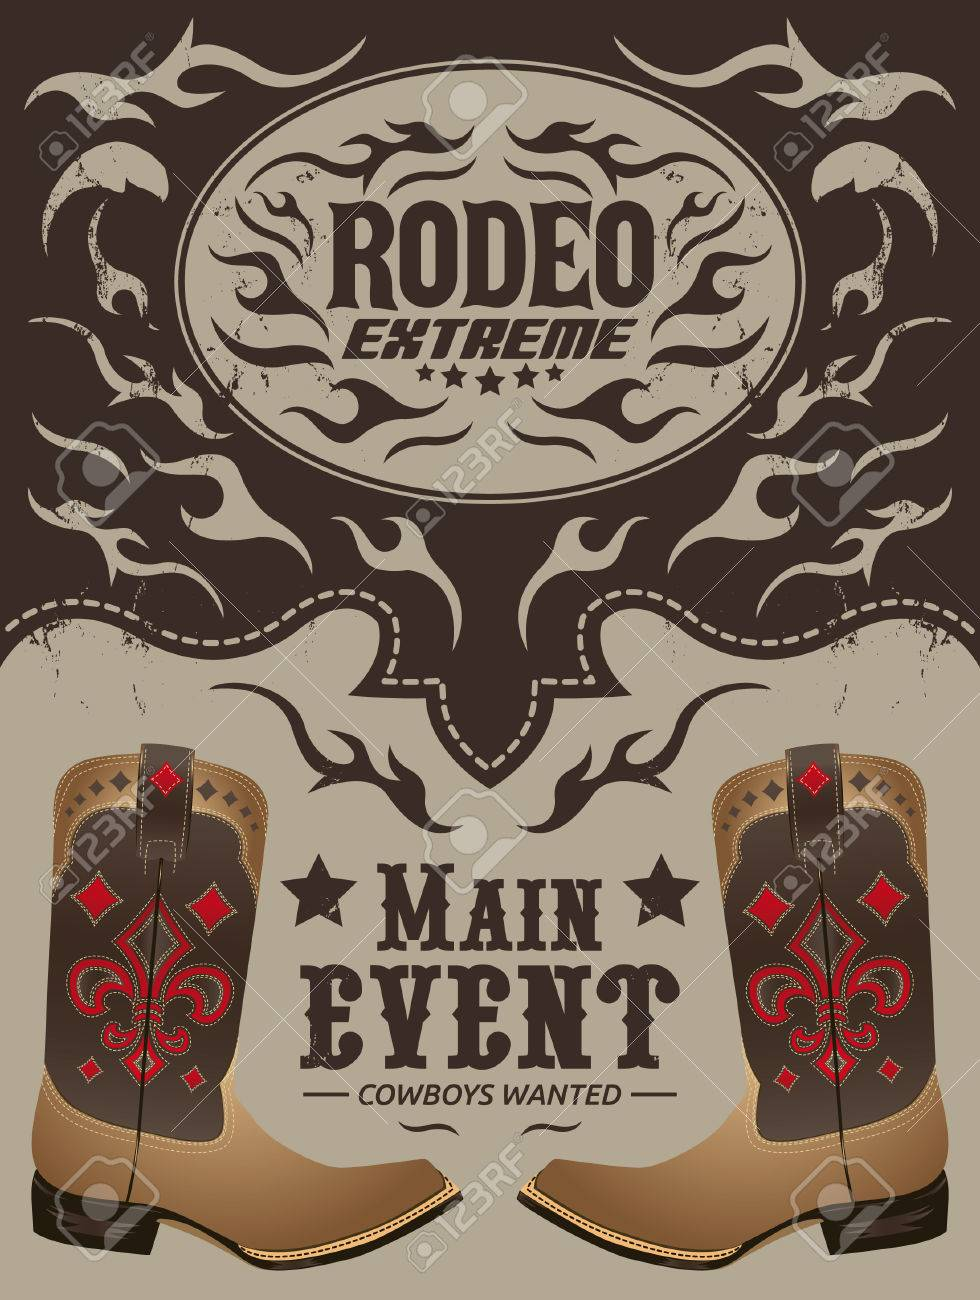 rodeo extreme cowboy event poster vector invitation template